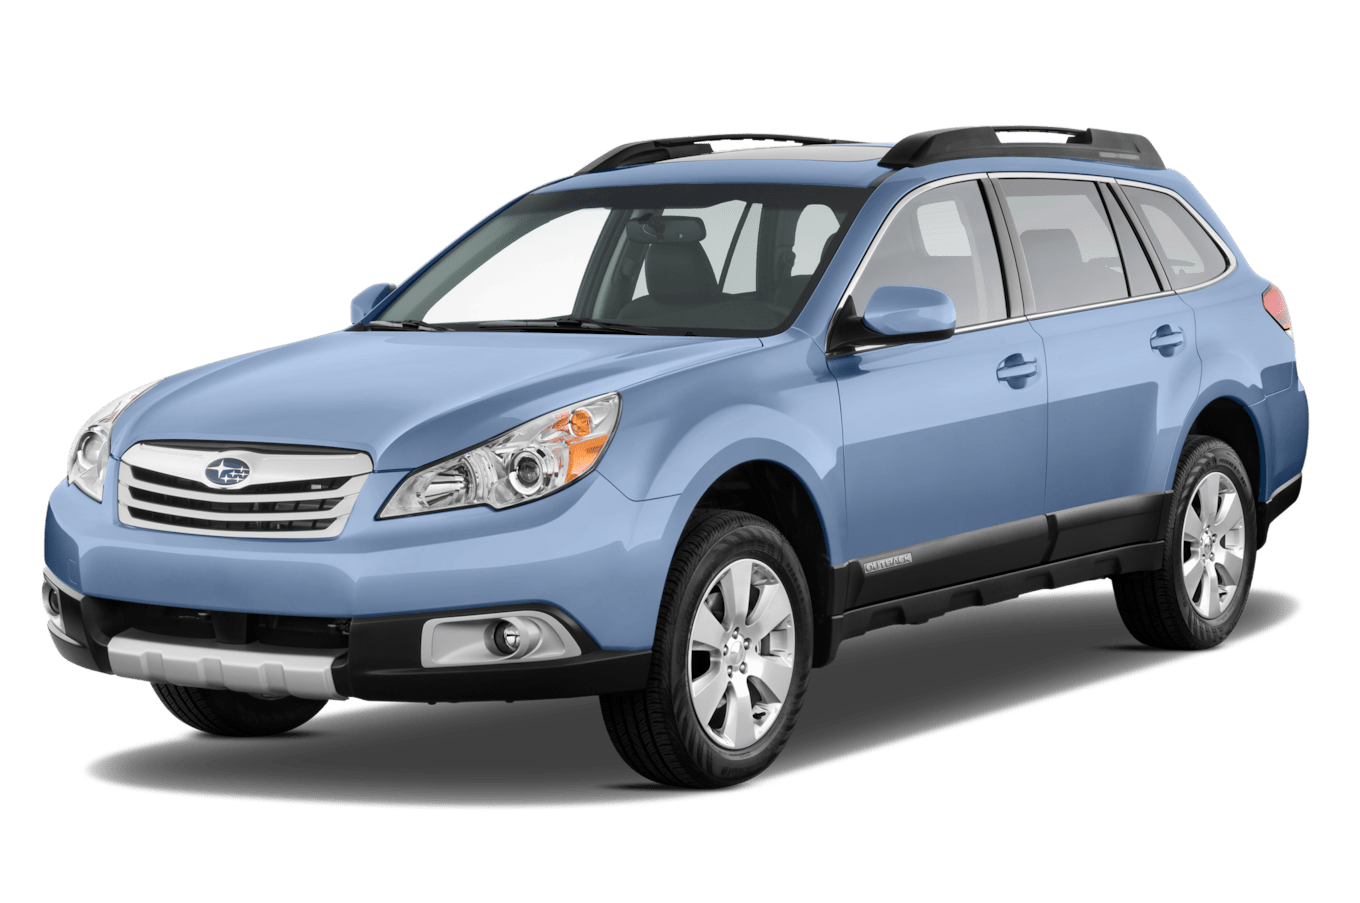 2011 subaru outback reviews research outback prices specs wiring harness in addition 2016 subaru outback wagon further subaru [ 392:261 x 1360 Pixel ]